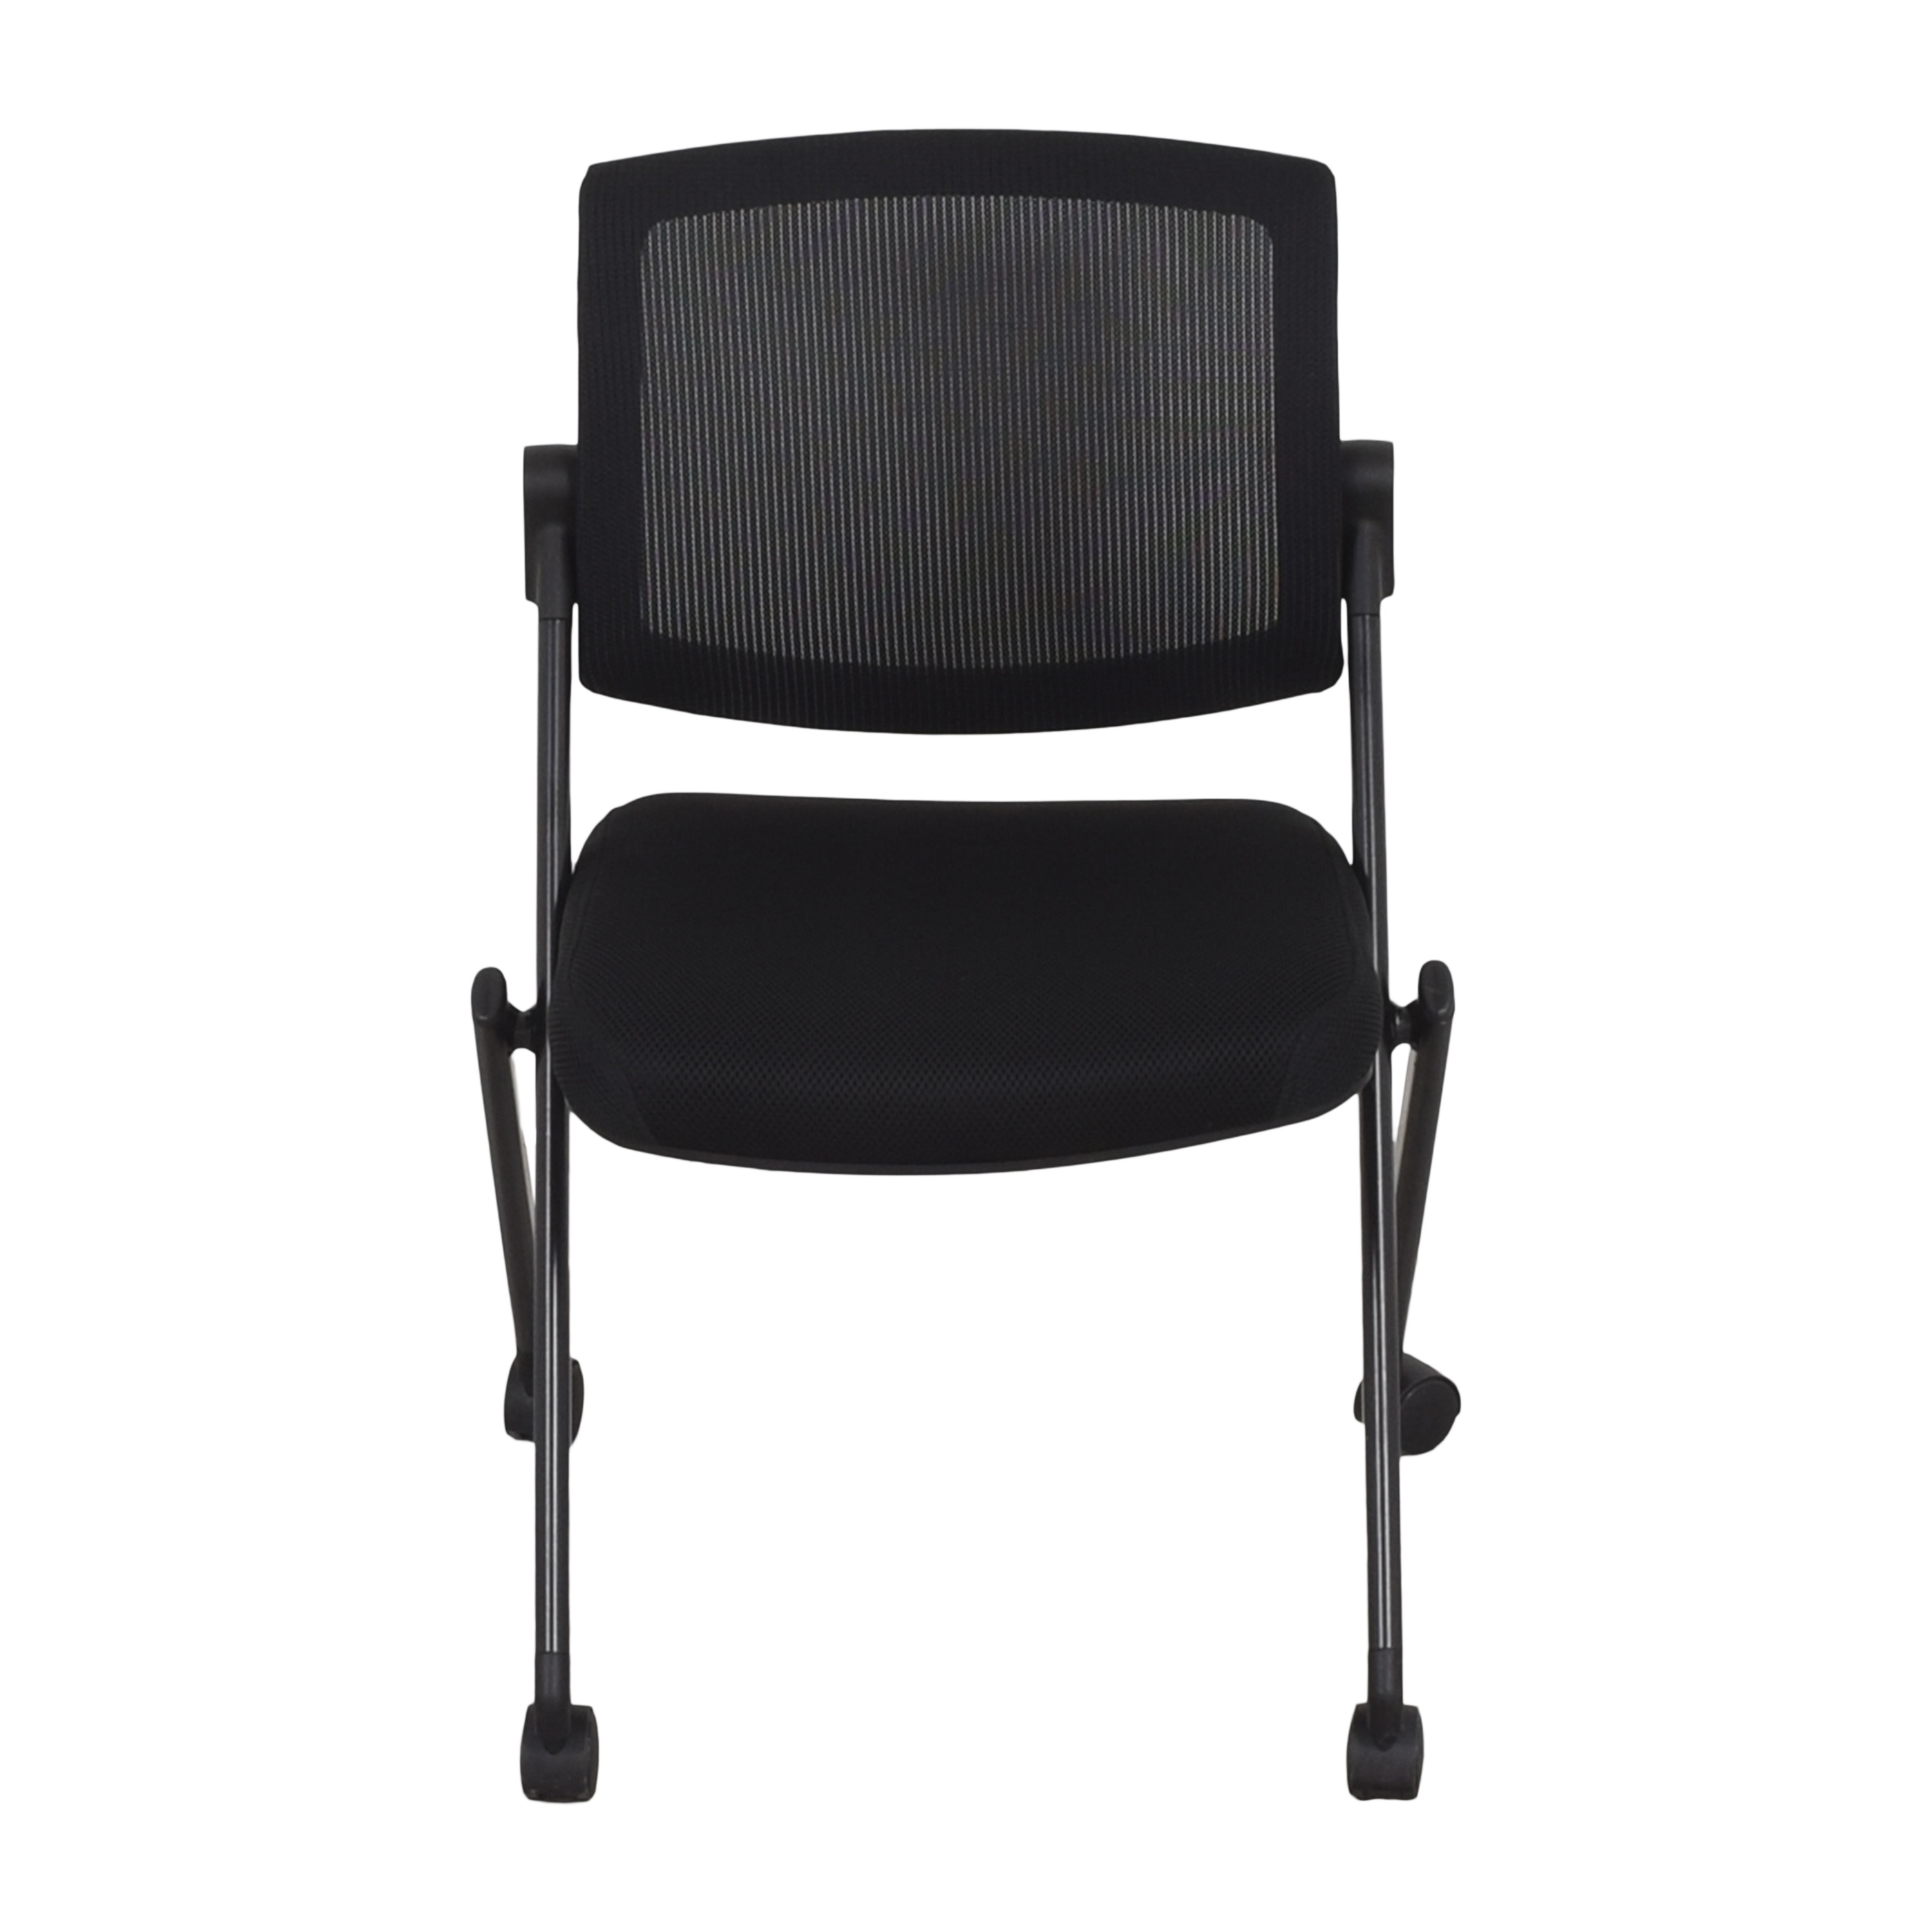 Offices to Go Offices to Go Armless Mesh Back Flip Seat Nesting Chair second hand